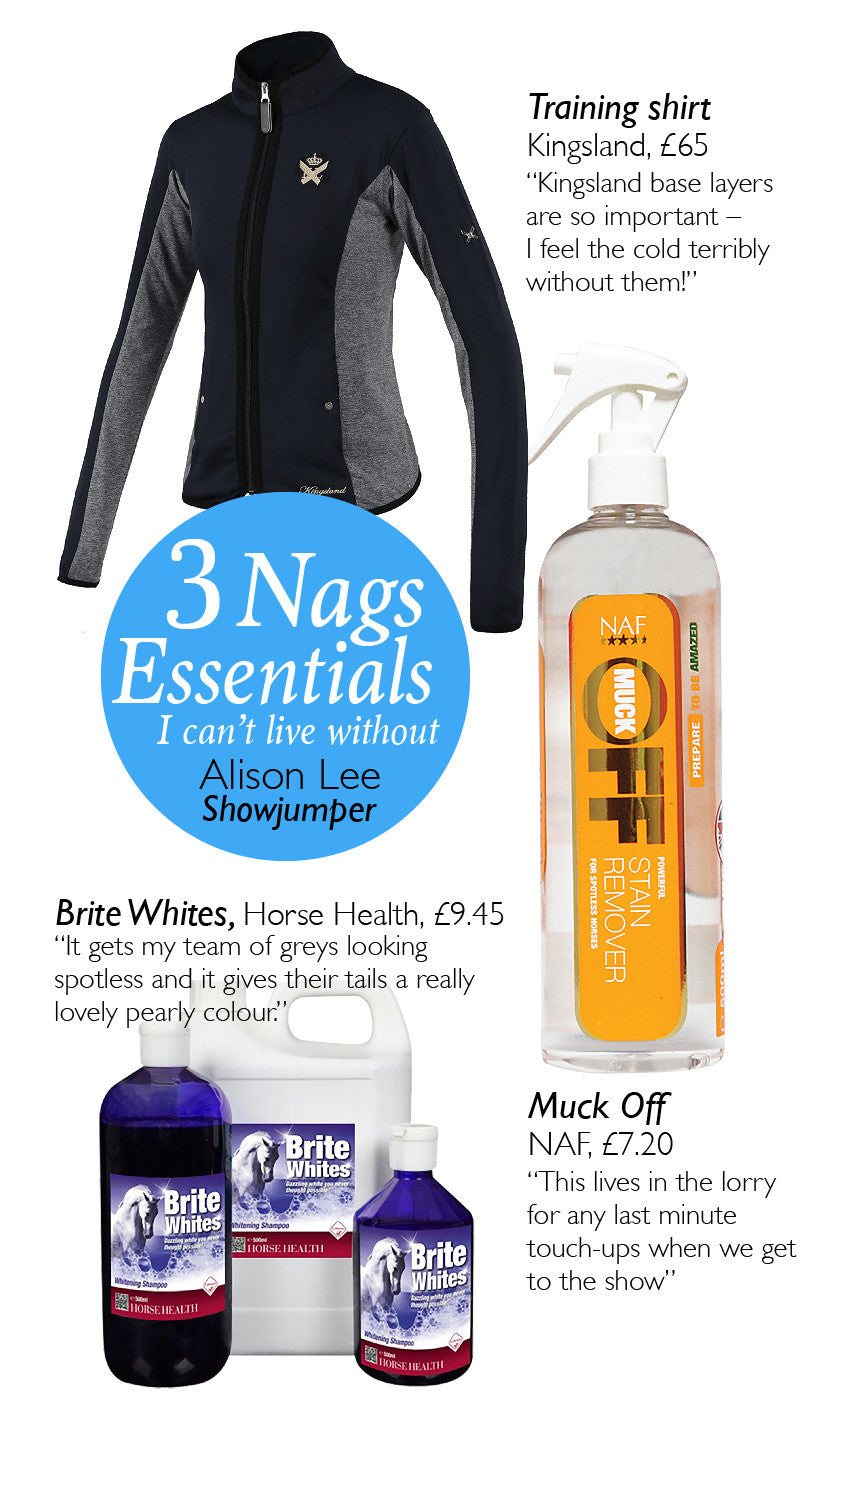 3 Nags Essentials: Alison Lee, showjumper